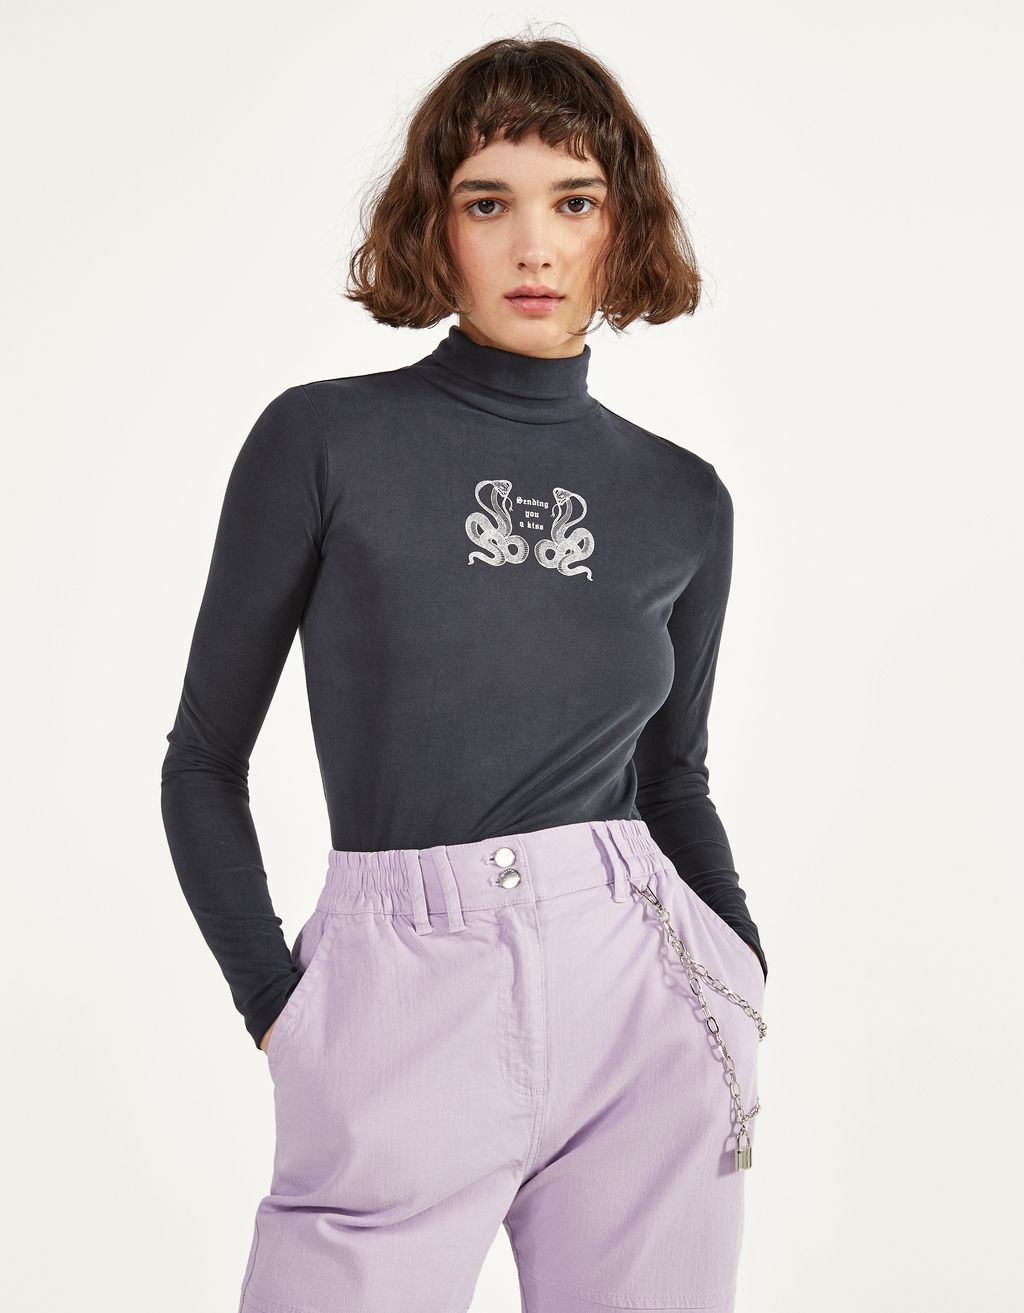 Turtleneck top with print